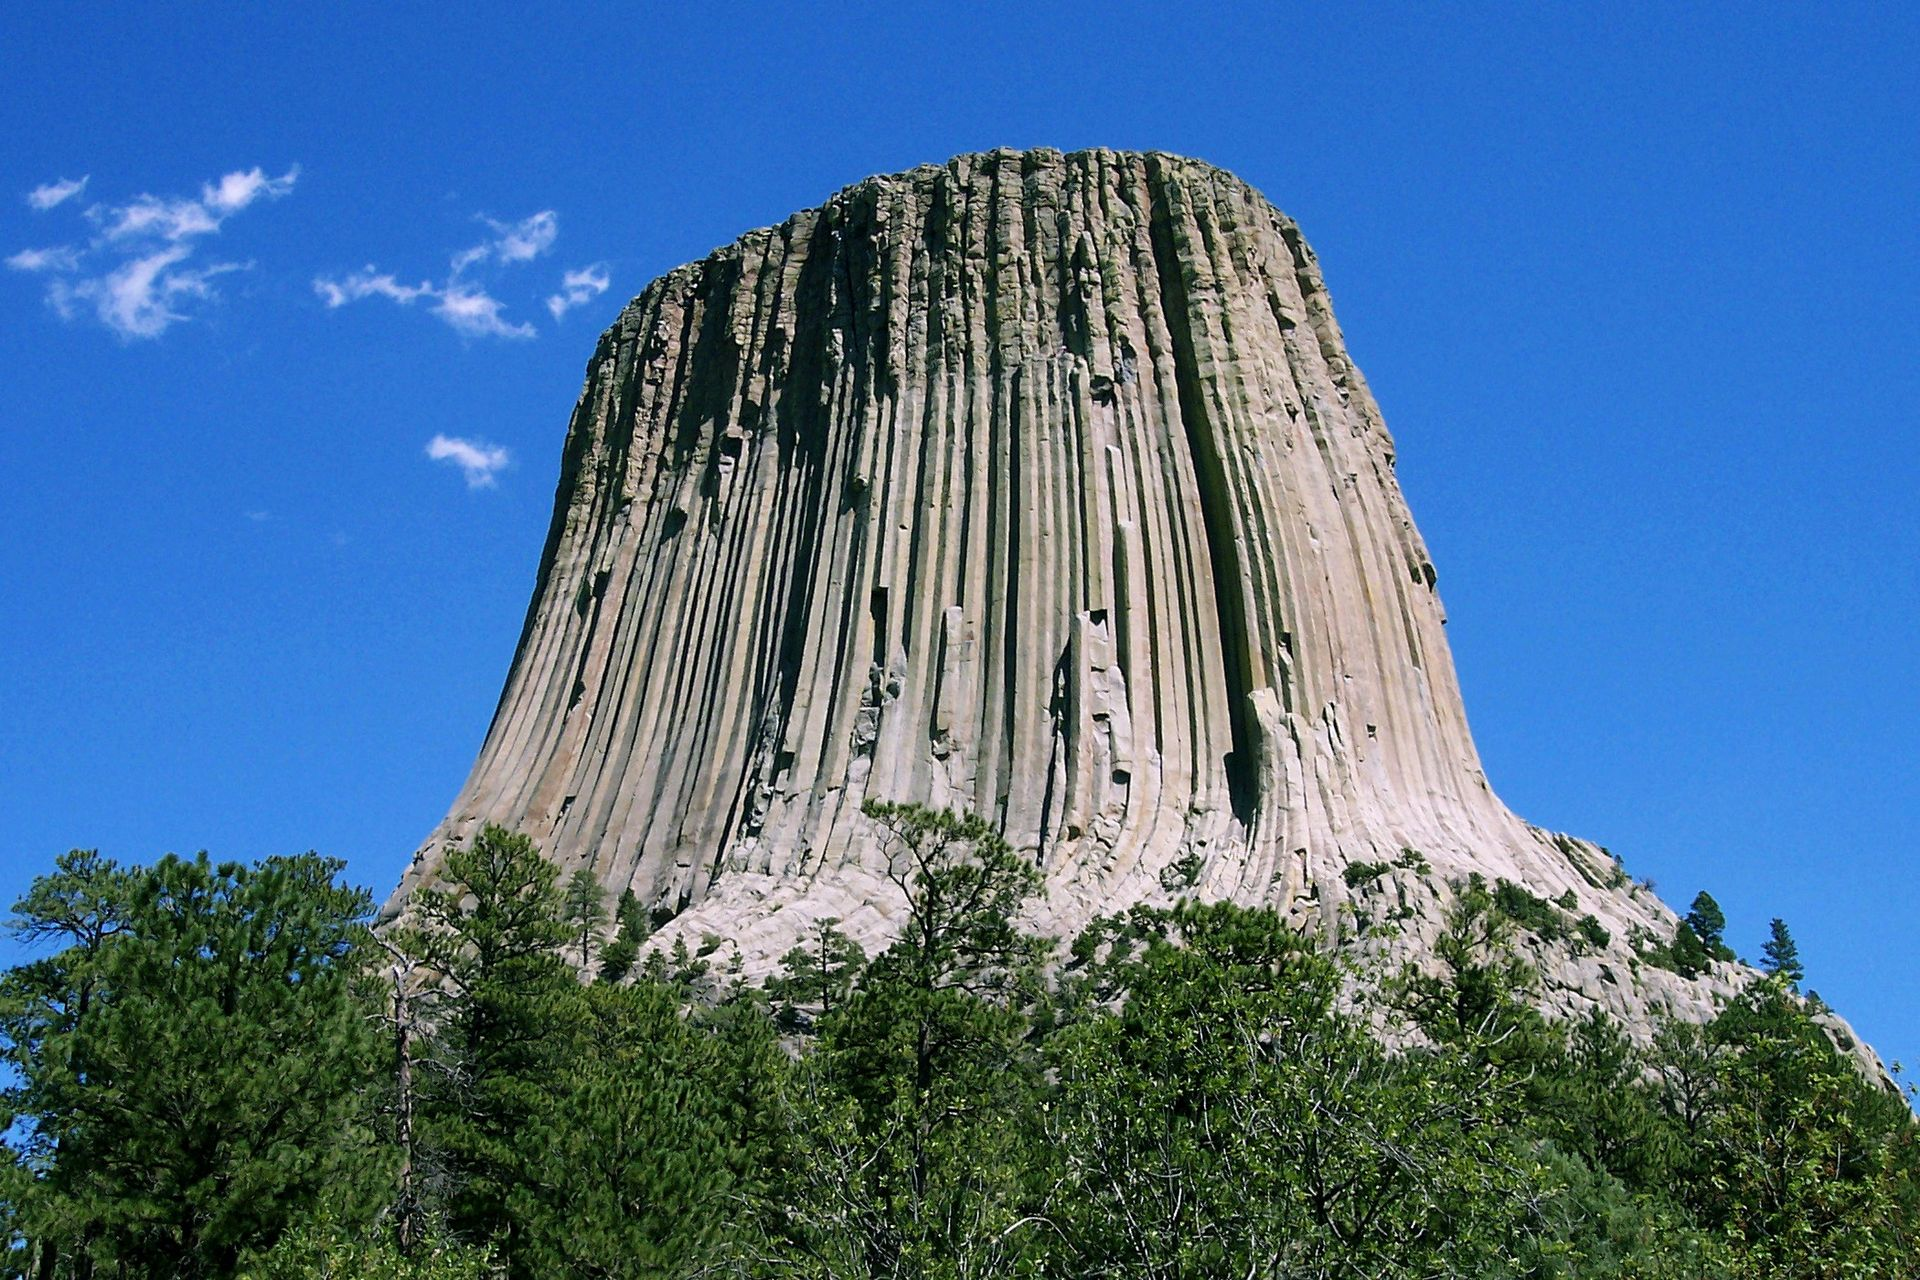 Devil's Tower from Wikipedia http://en.wikipedia.org/wiki/Devils_Tower